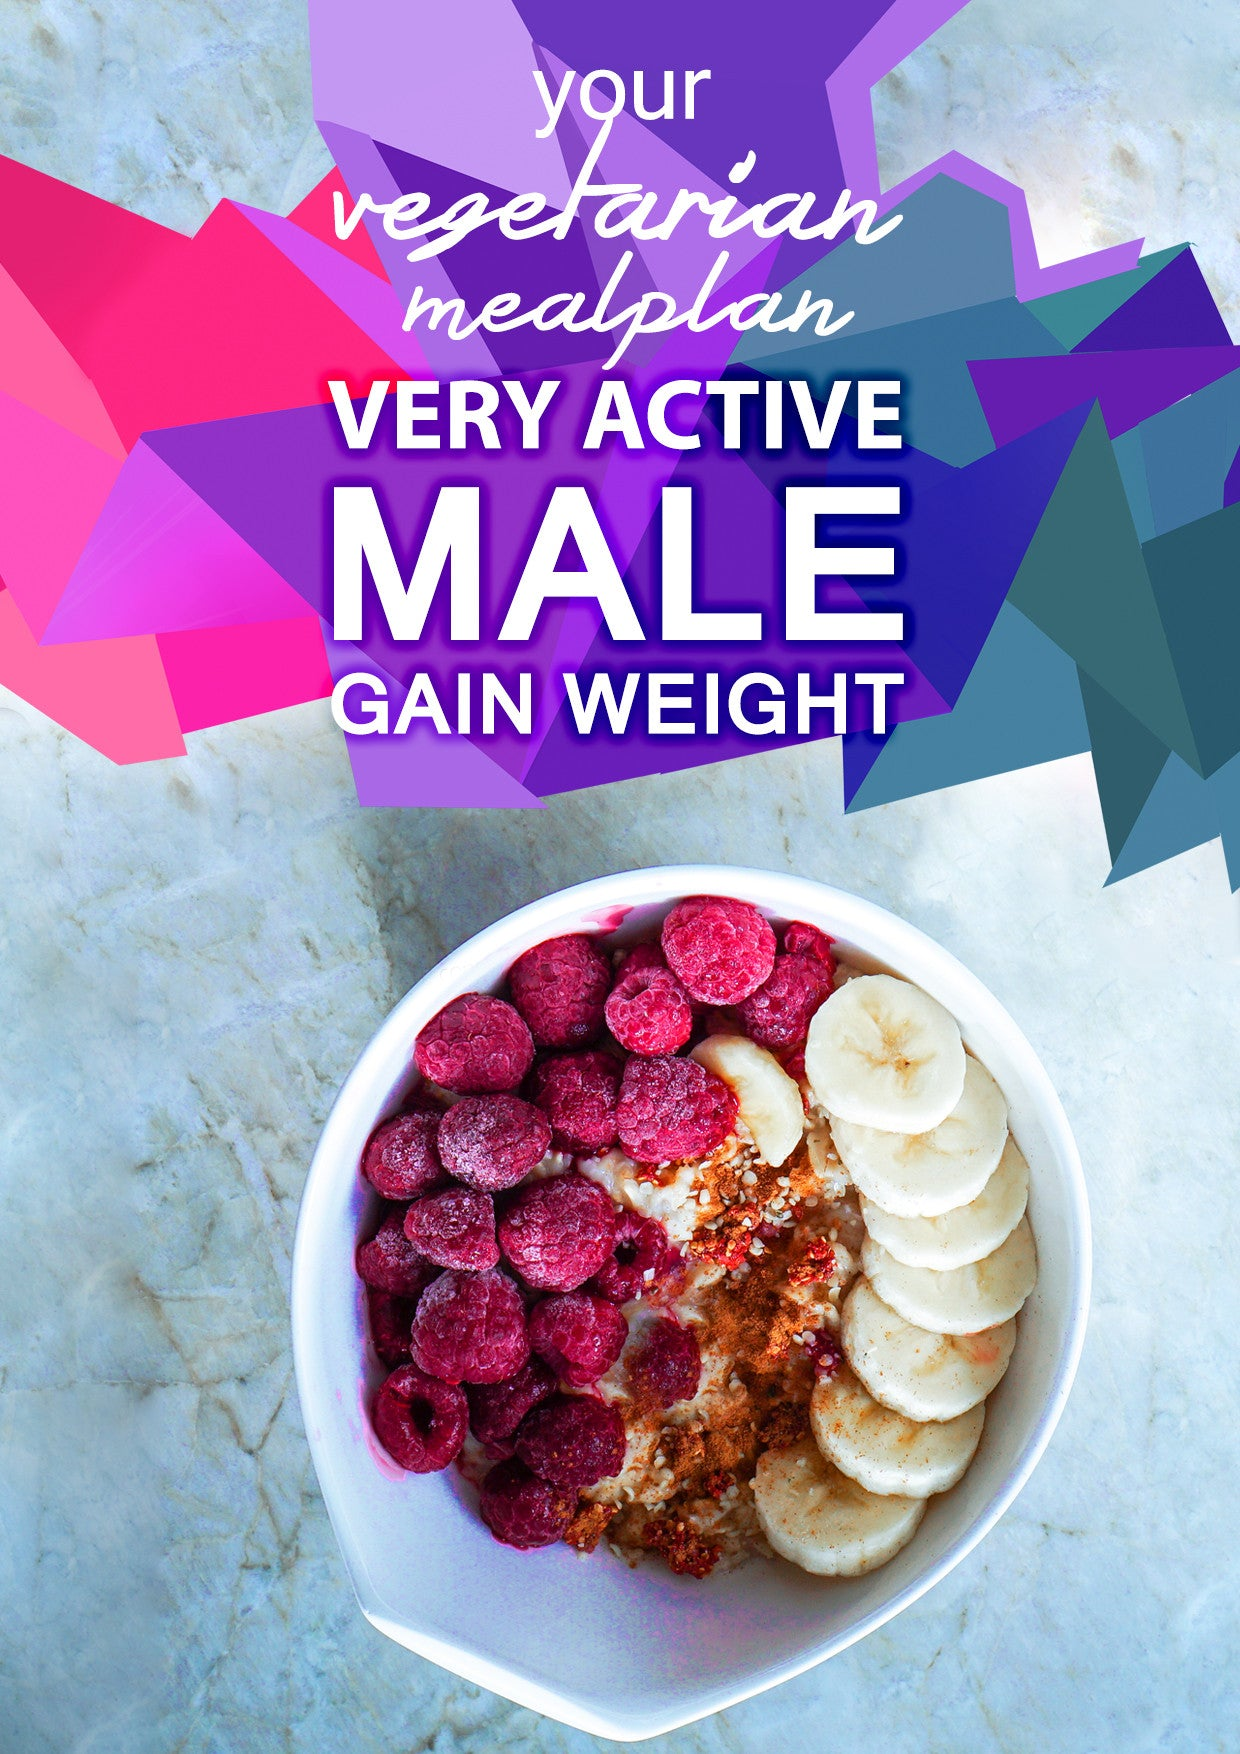 Vegetarian Very Active Male - Gain Weight